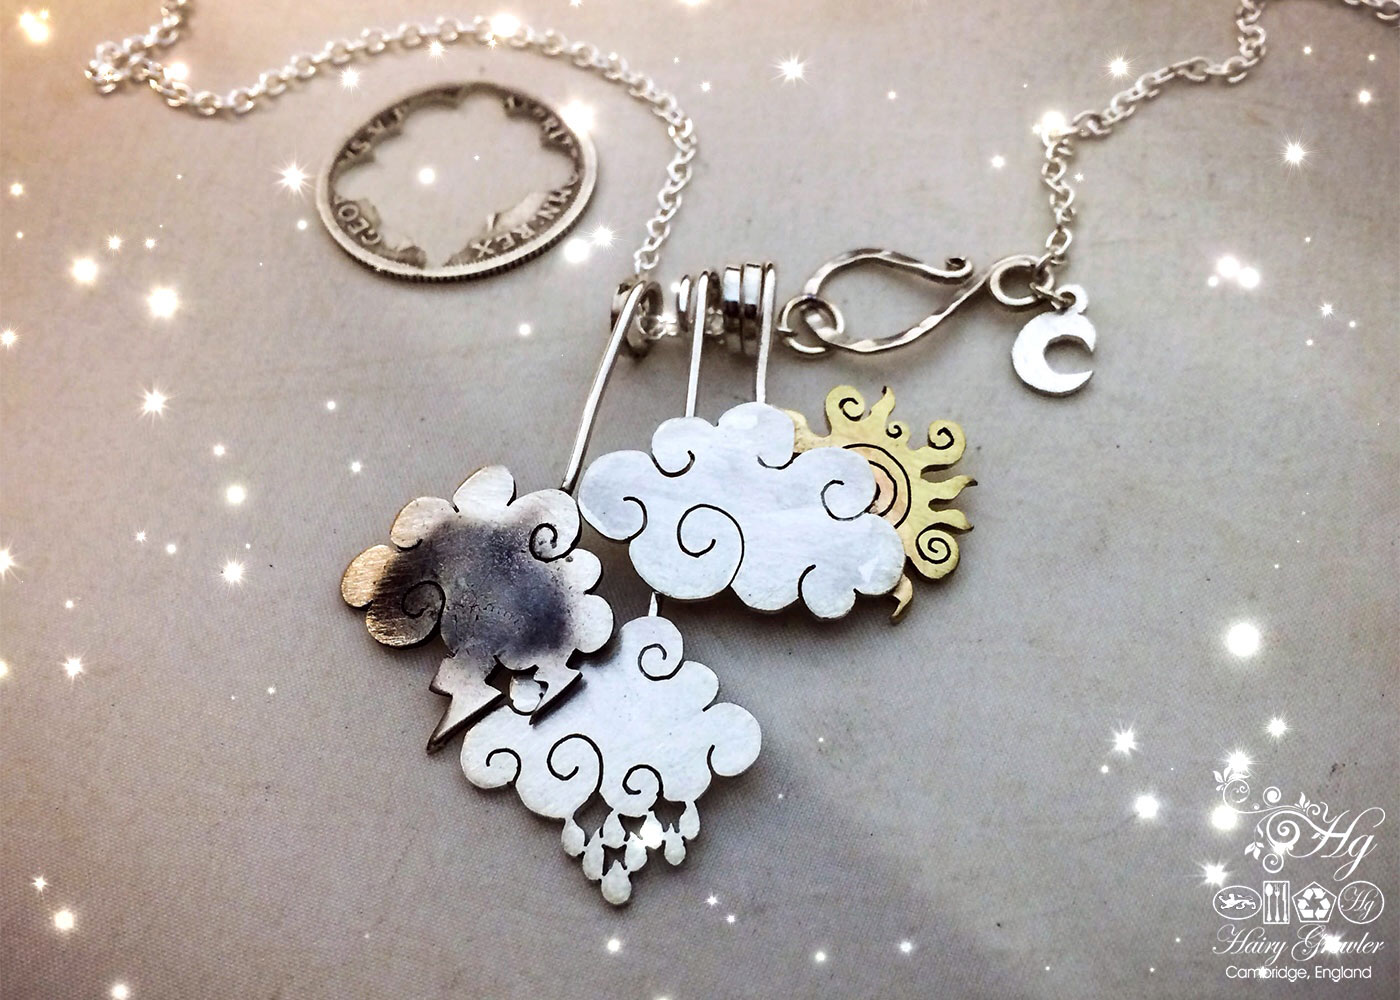 Upcycled silver coin cloud necklace made from silver shillings